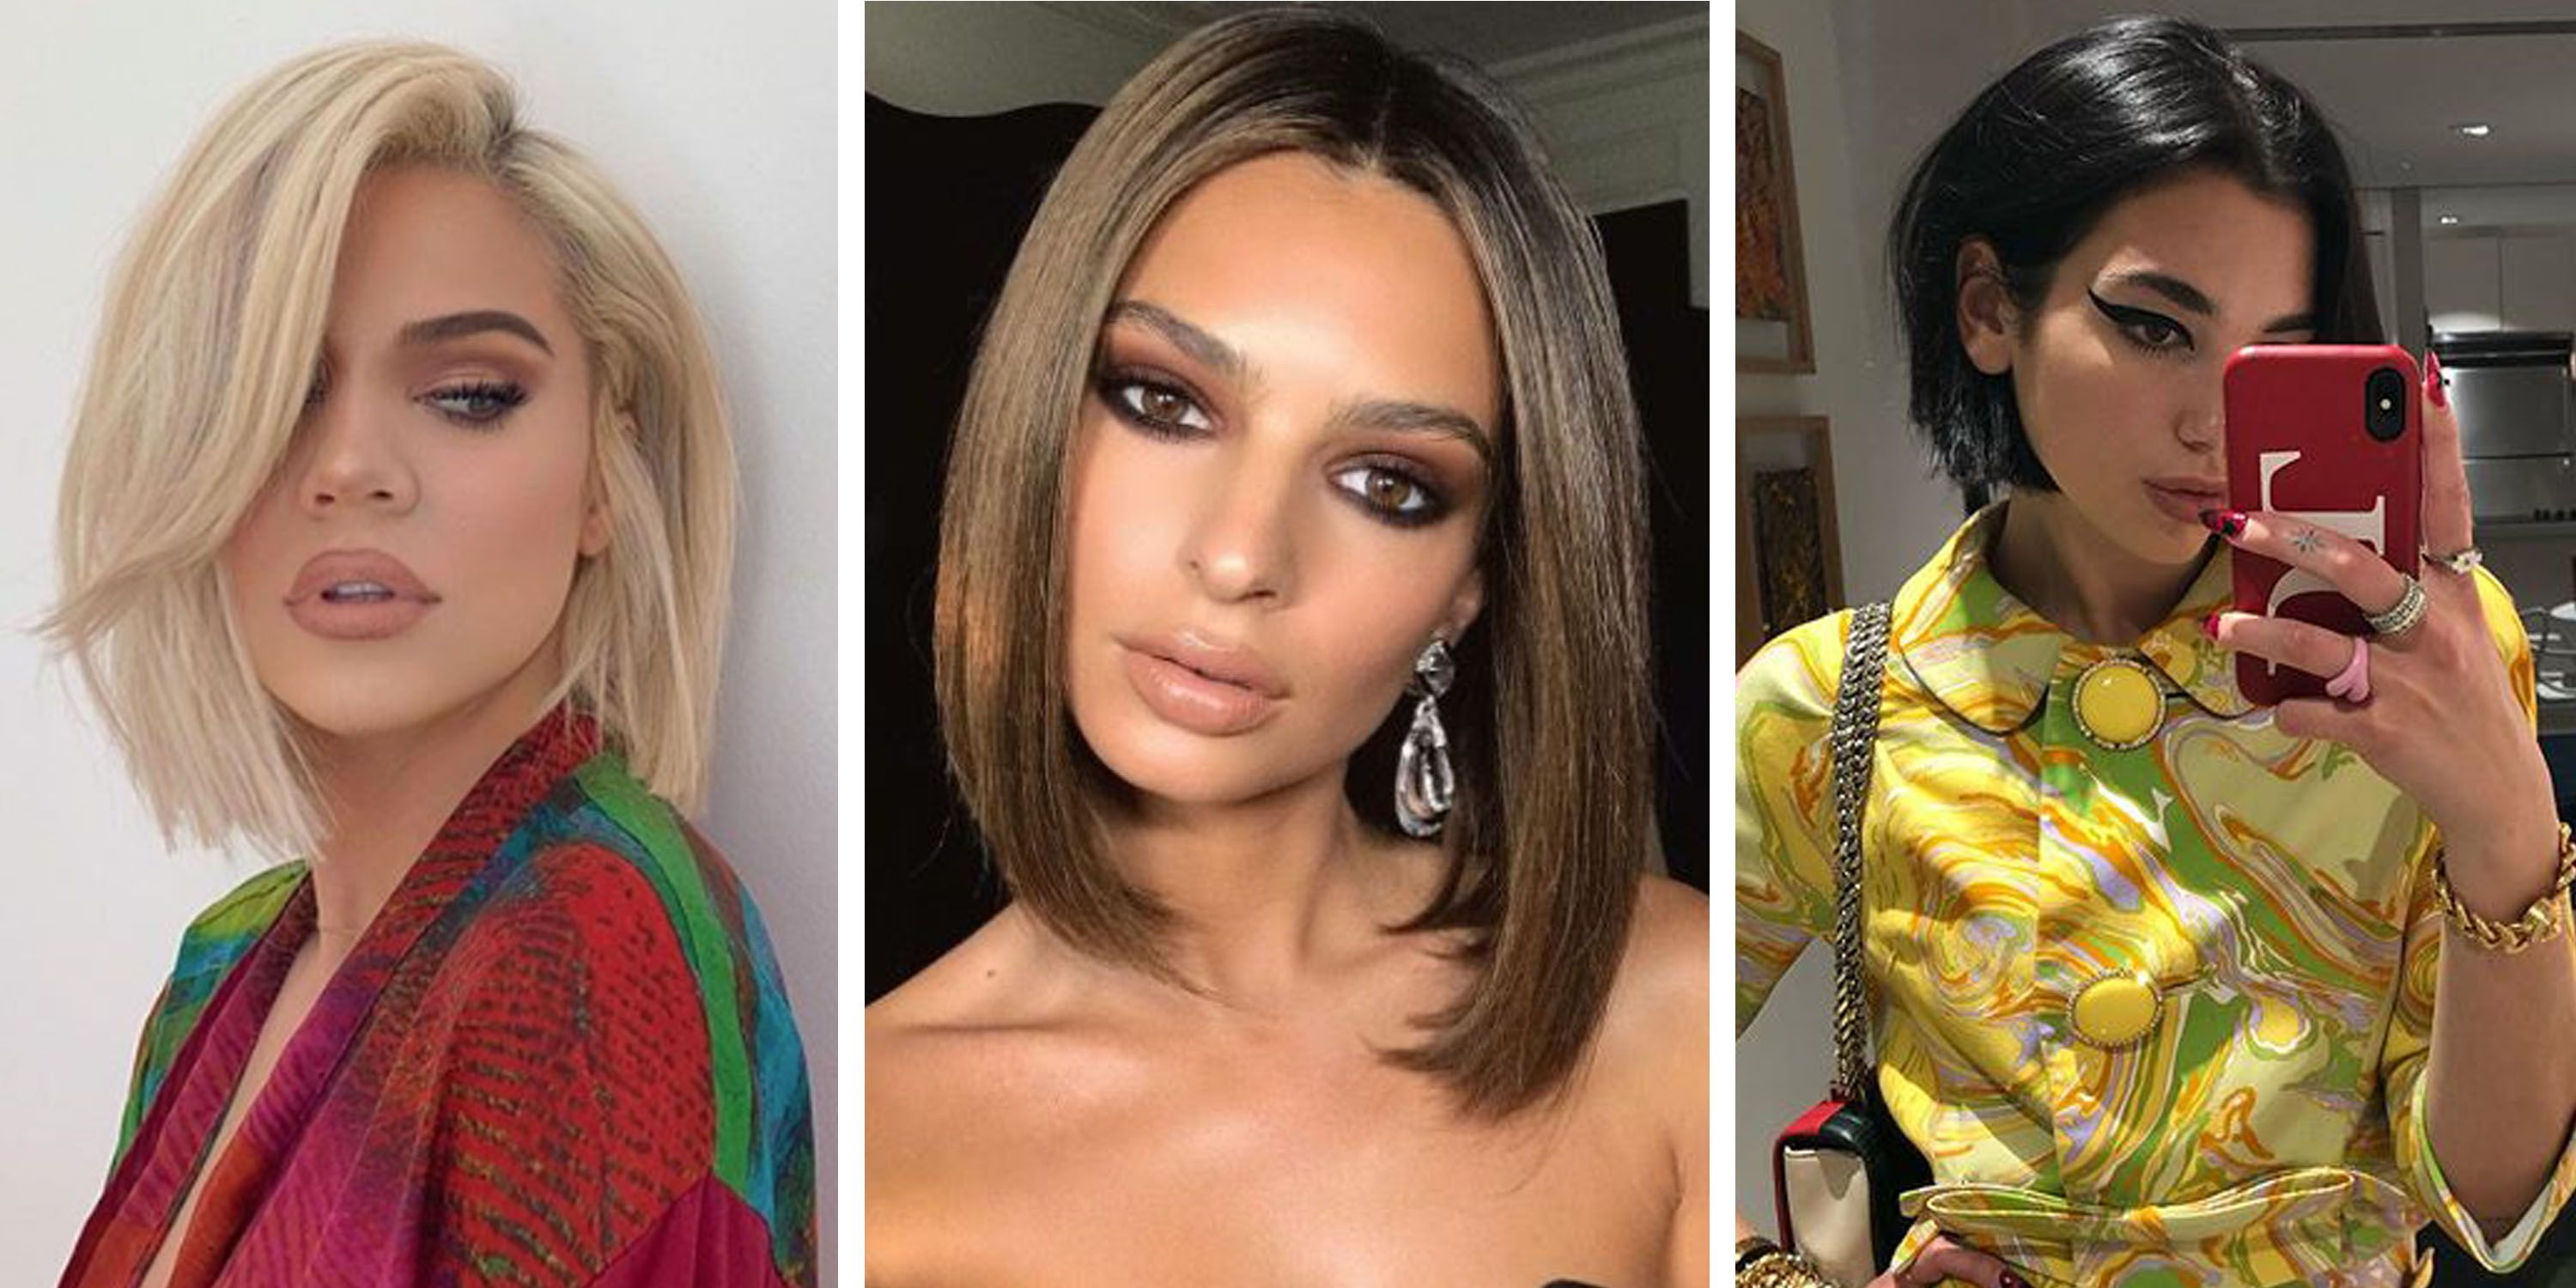 Bob hairstyles for 2020 , 62+ short haircut trends to try now